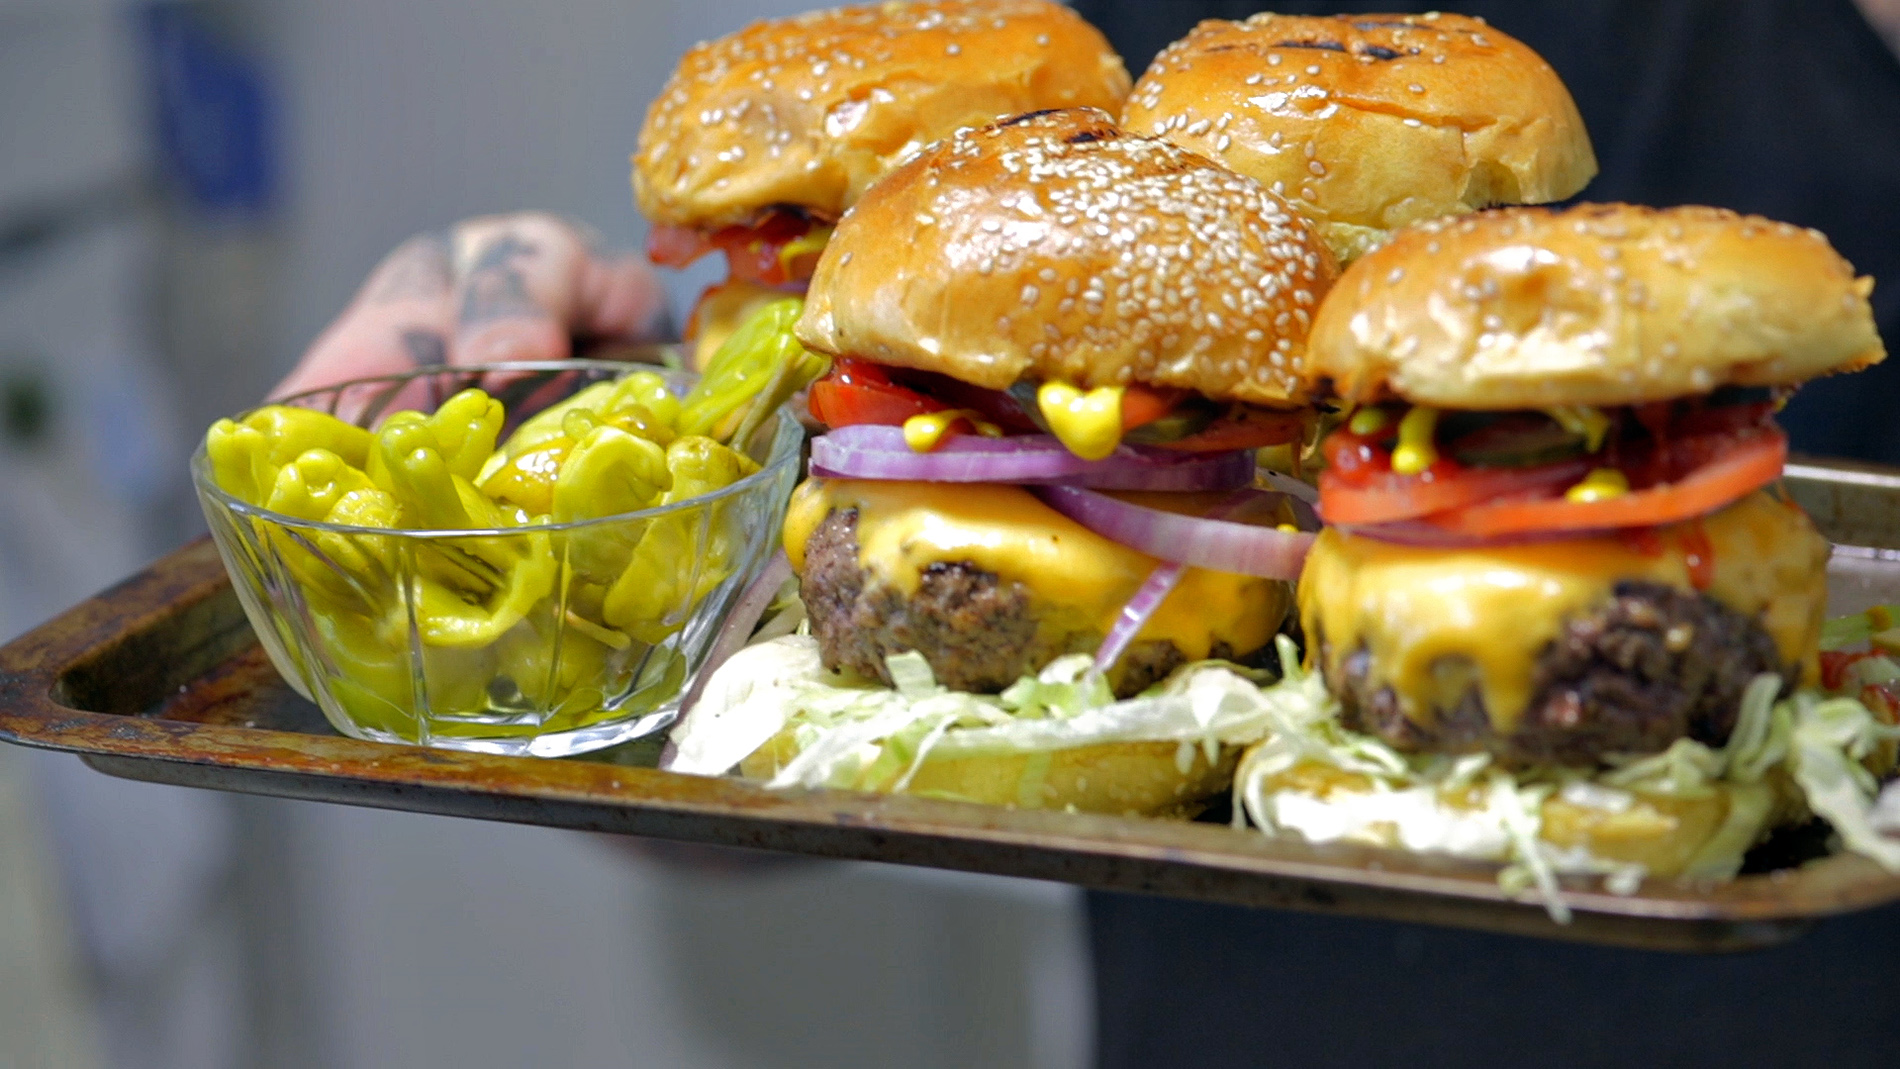 Discussion on this topic: Make the perfect cheeseburger, make-the-perfect-cheeseburger/